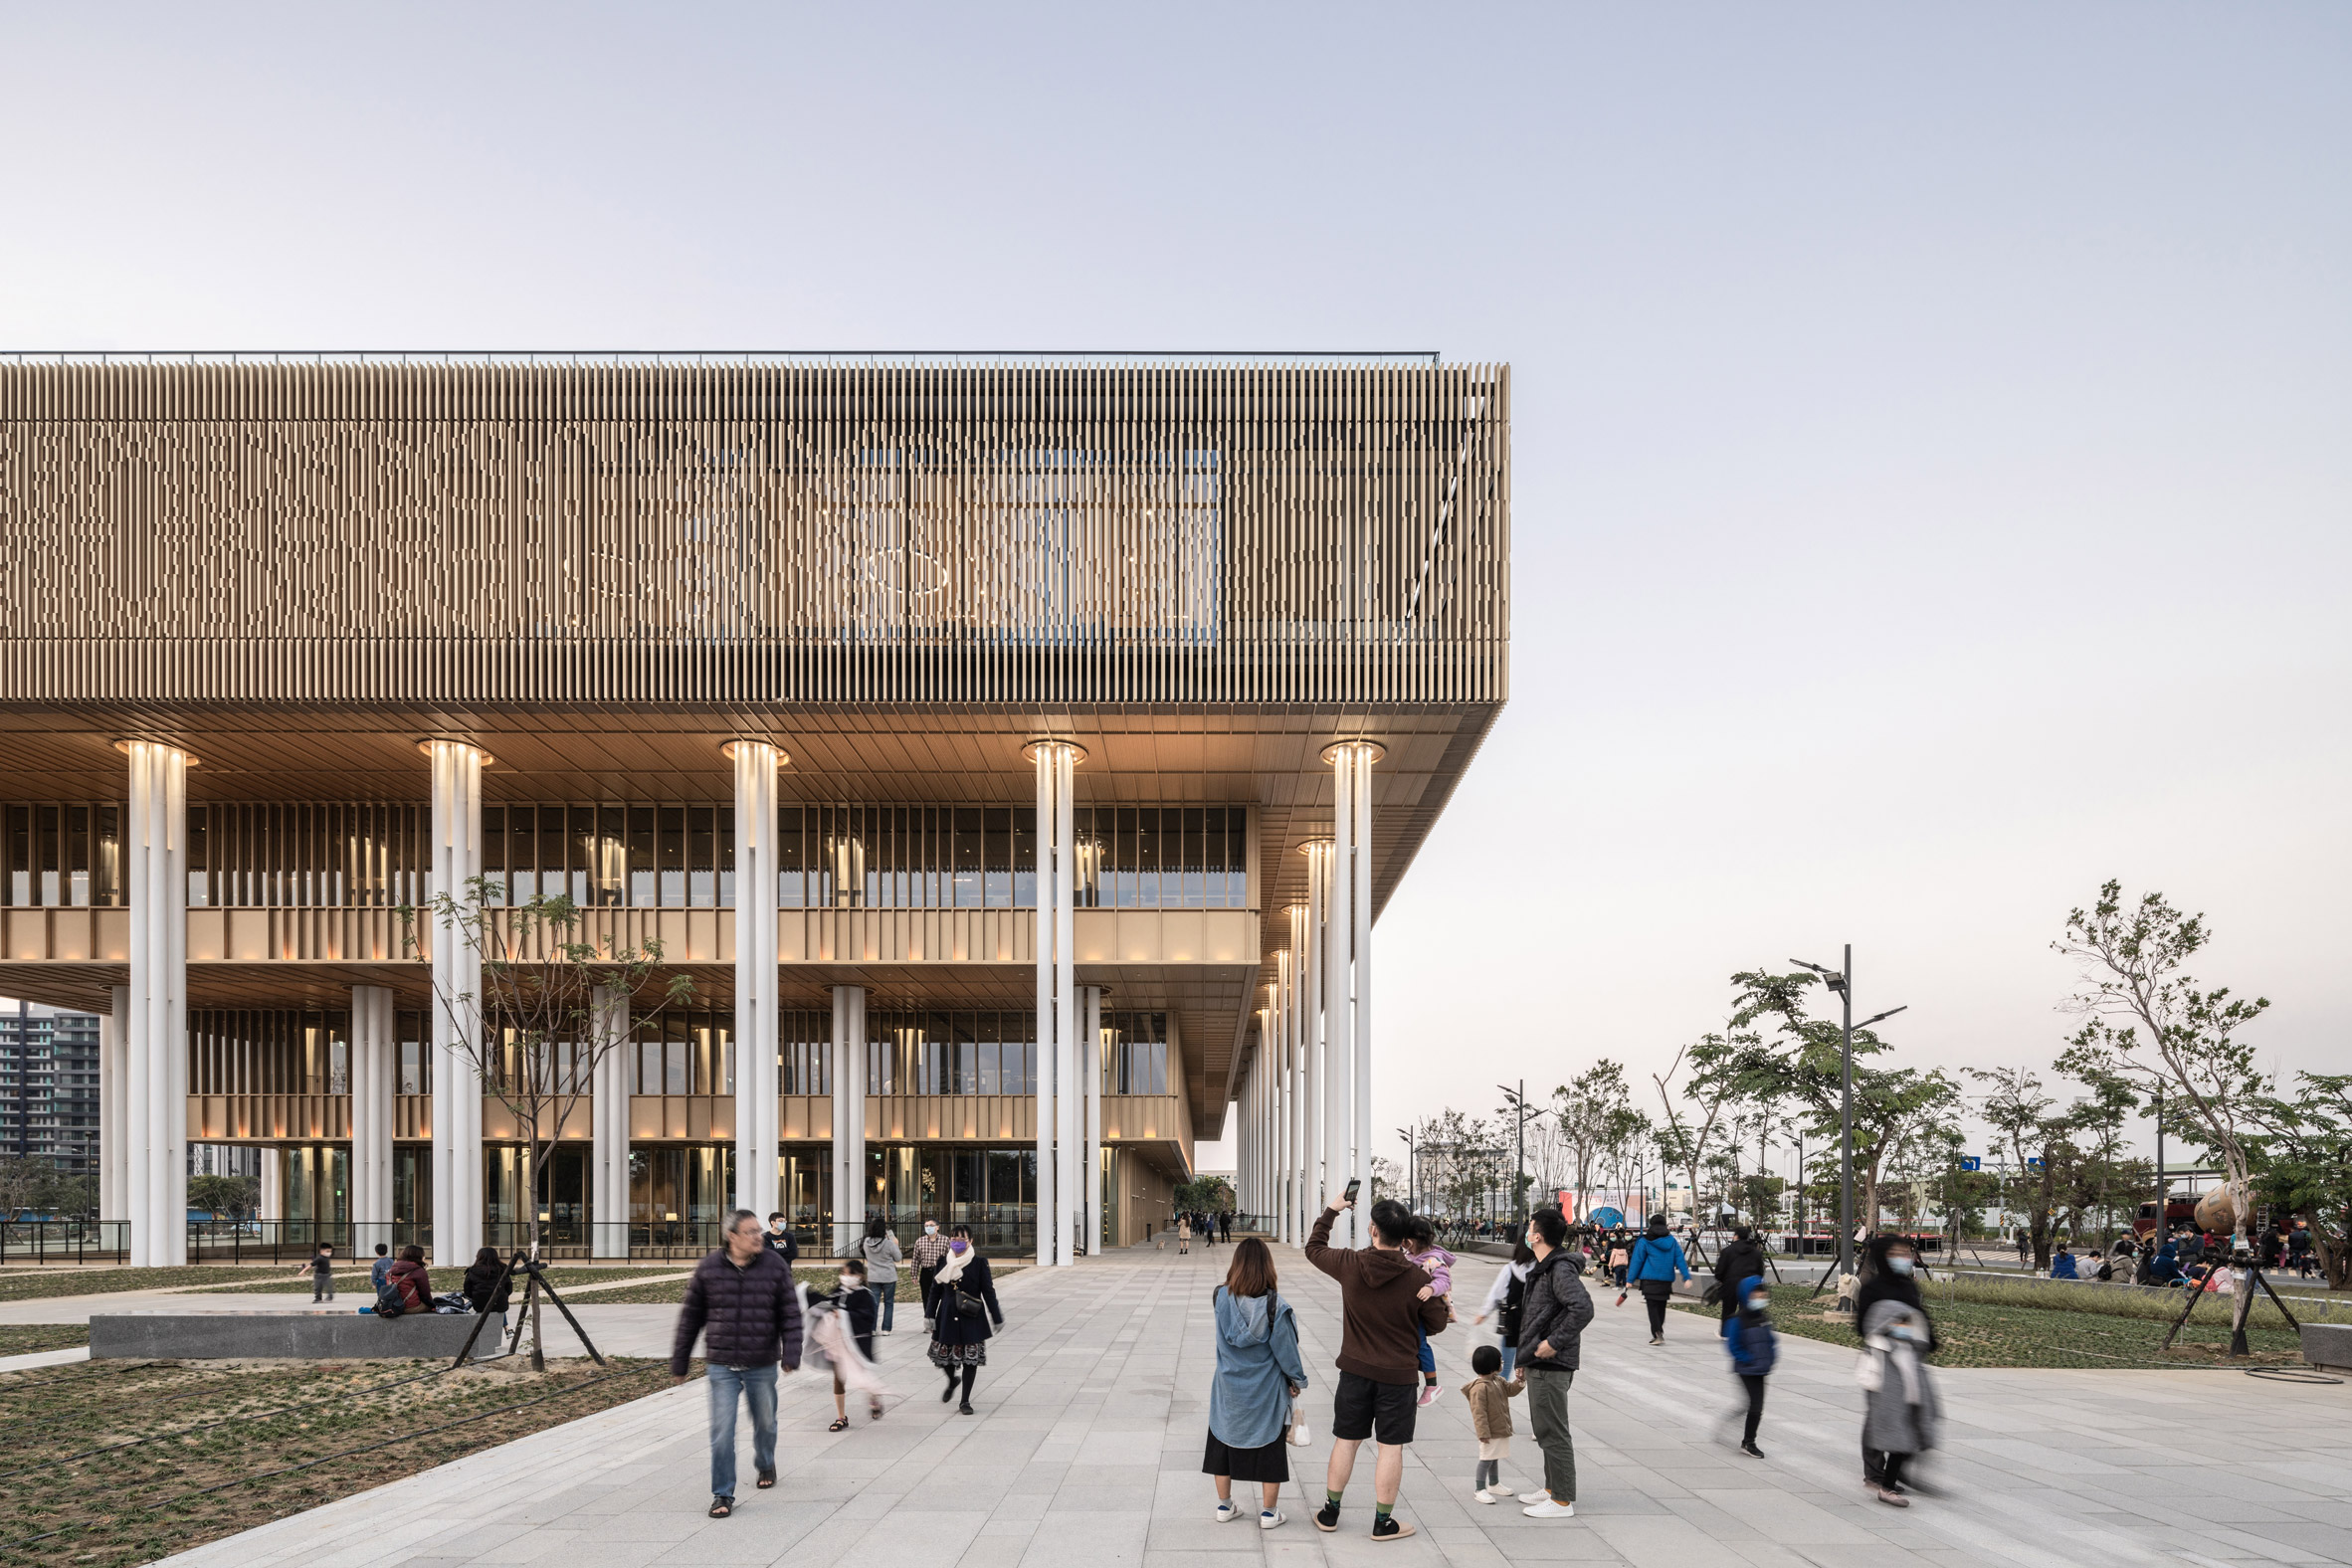 A stepped public library by Mecanoo and MAYU Architects